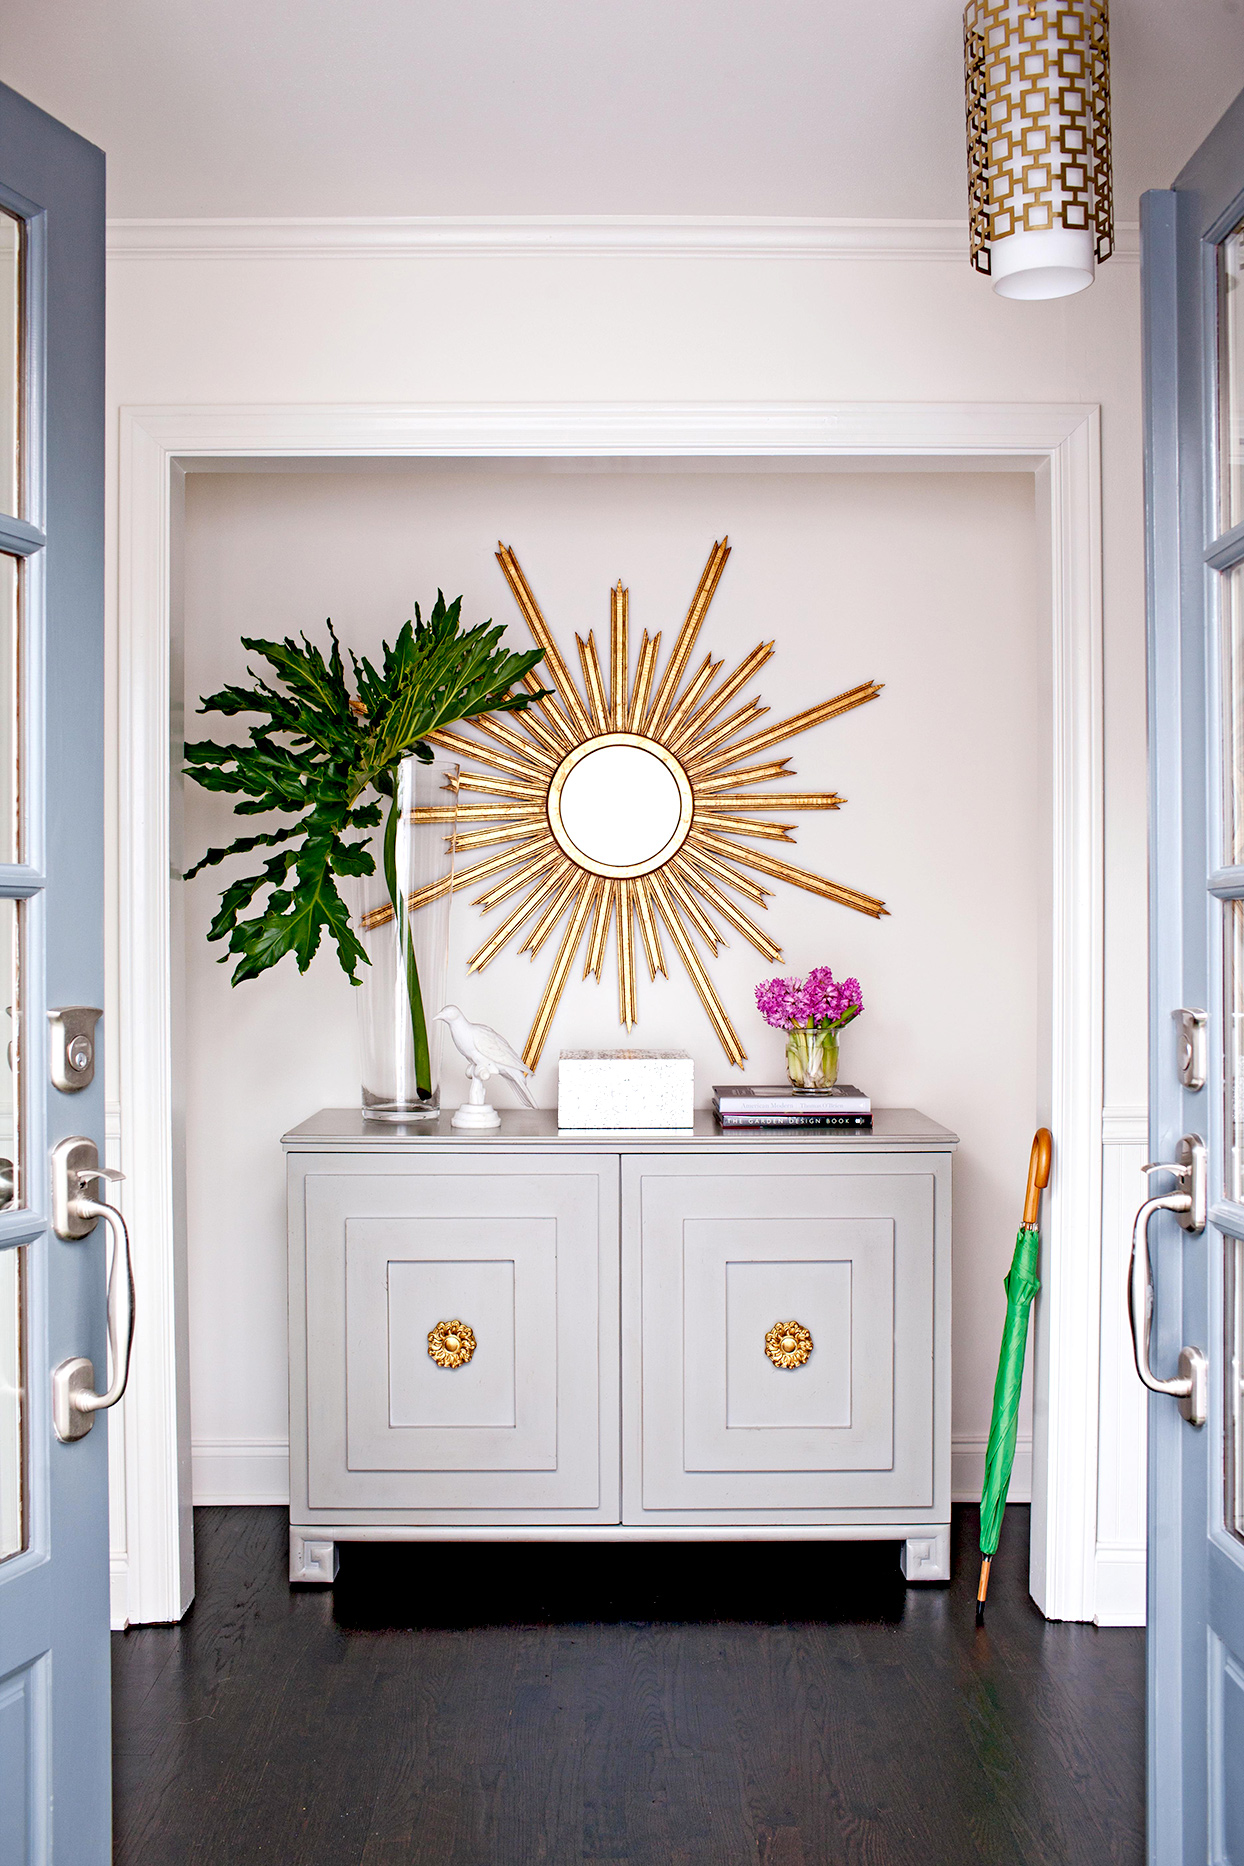 Nook with gray cabinet and decorative mirror